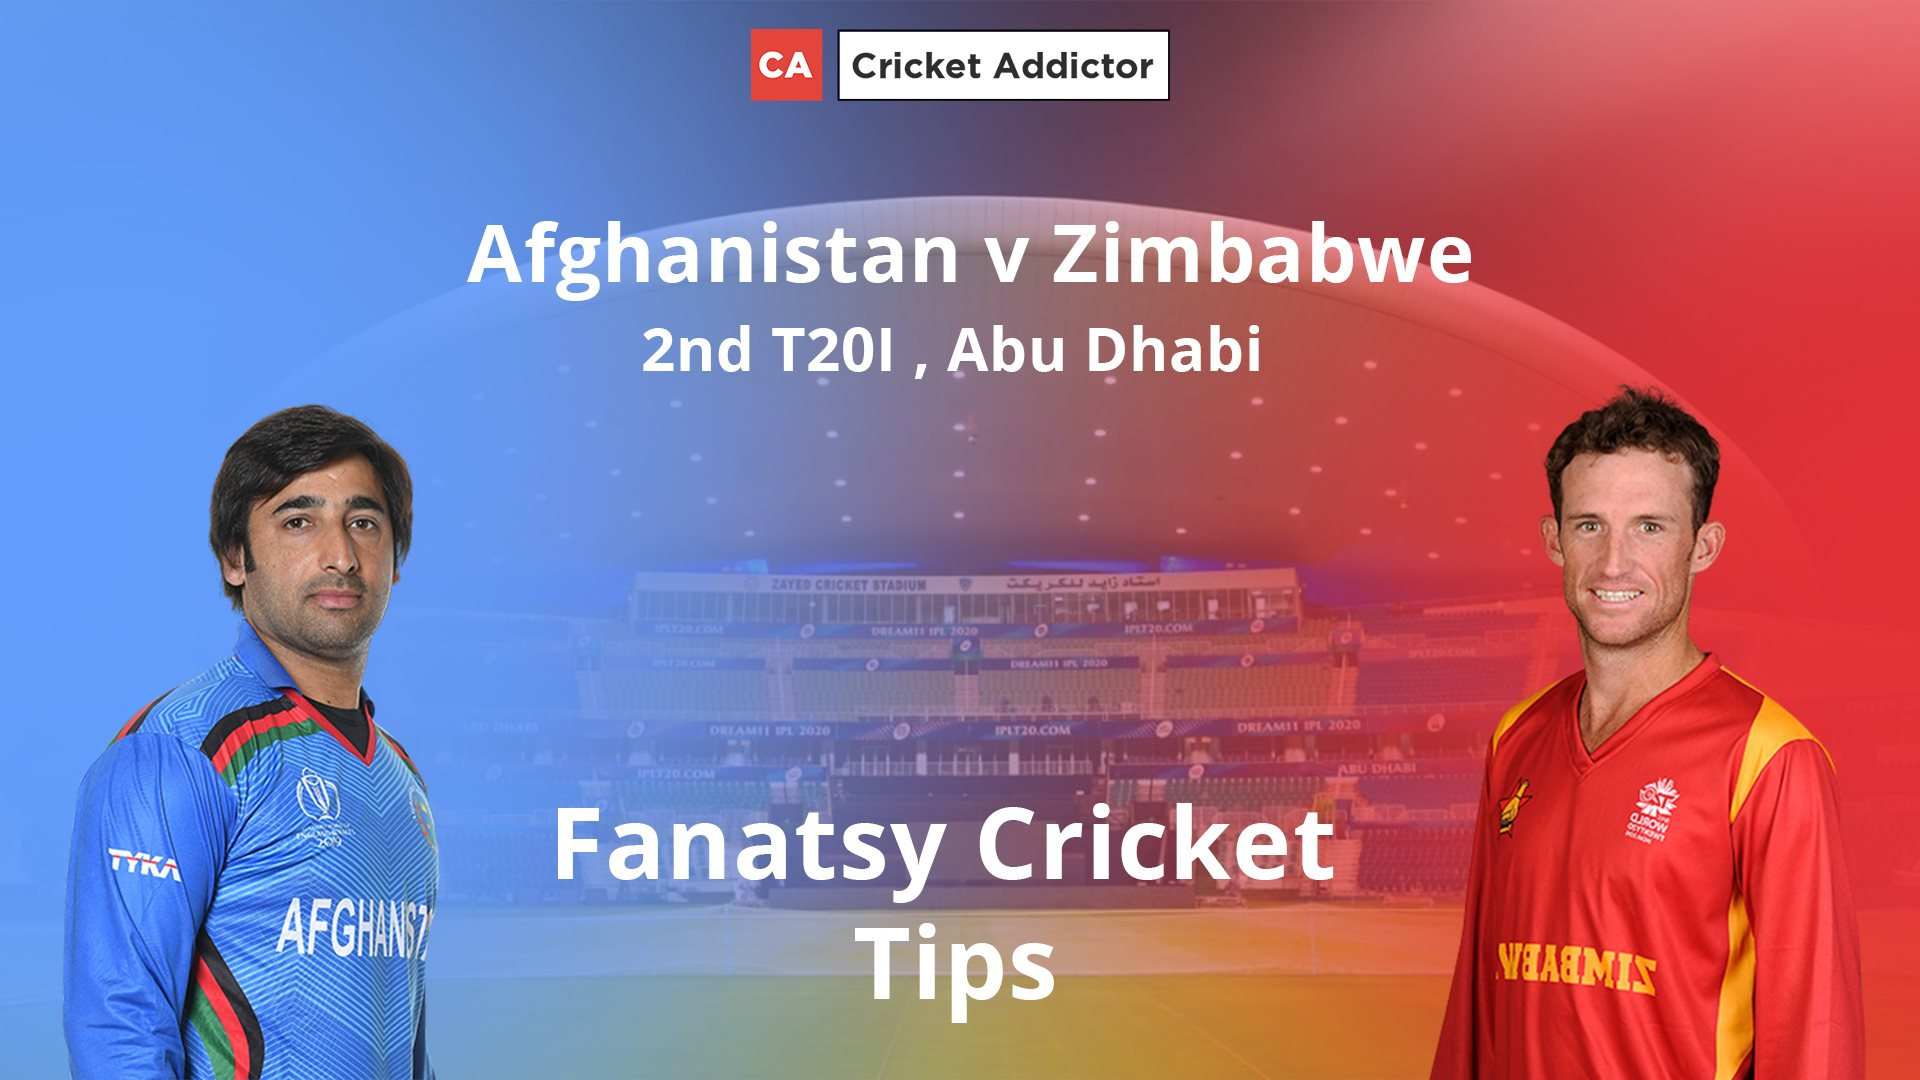 Afghanistan vs Zimbabwe 2ND T20I Dream11 Prediction, Fantasy Cricket Tips, Playing XI, Pitch Report, Dream11 Team, and Injury Update.